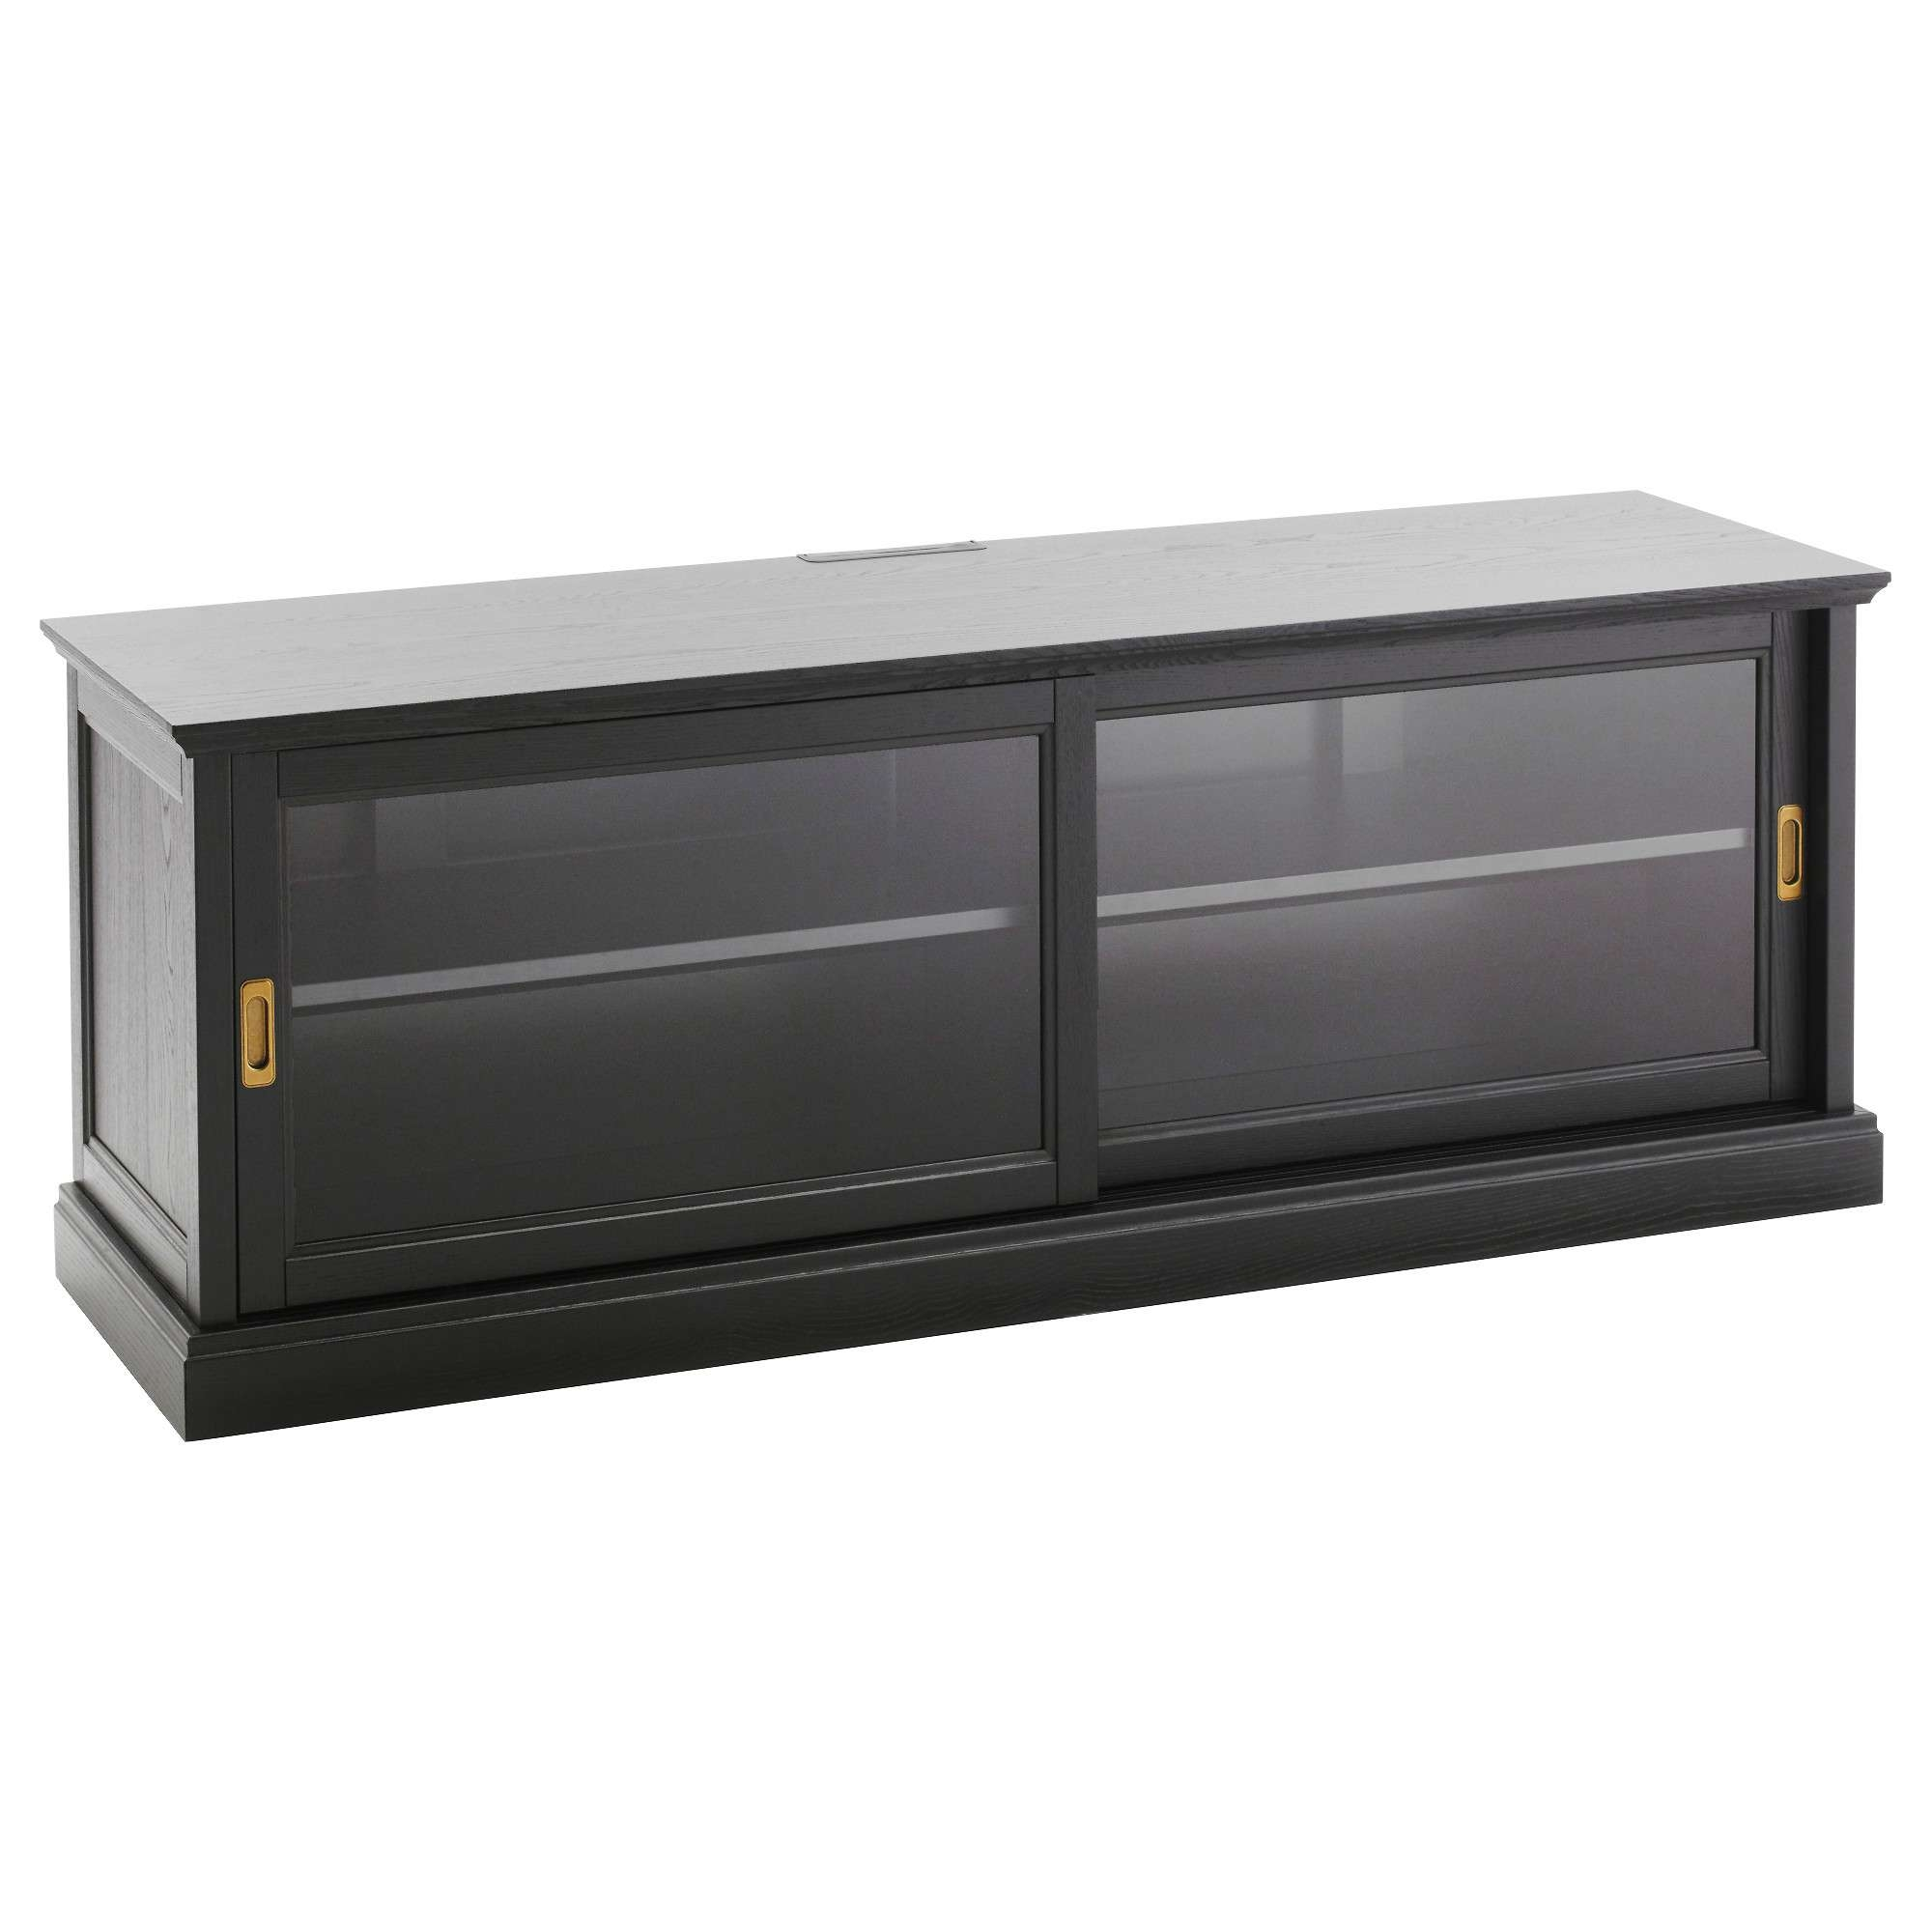 Furniture Accessories : Diy Ikea Tvs Stands Ideas Small Black Pertaining To Small Black Tv Cabinets (View 8 of 20)